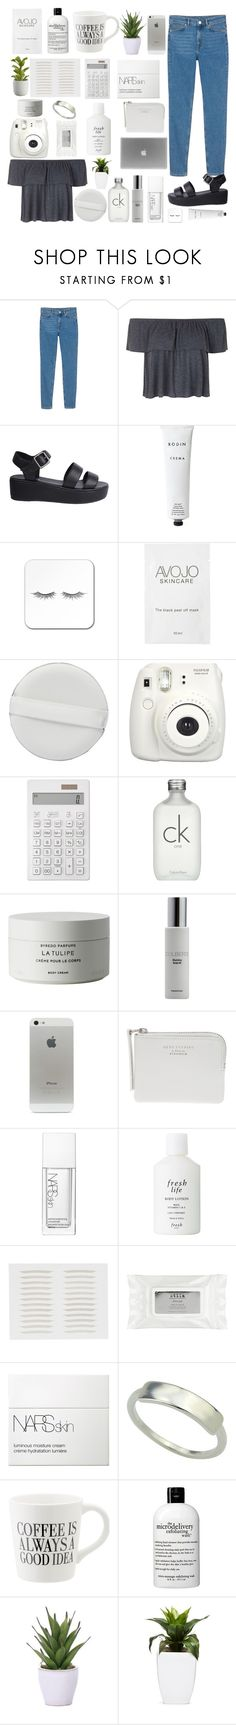 """""""NEW ACCOUNT!!!!"""" by cupcakegrl12 ❤ liked on Polyvore featuring Monki, Topshop, Nude, Rodin, Fujifilm, Muji, Calvin Klein, Byredo, Colbert MD and Acne Studios"""